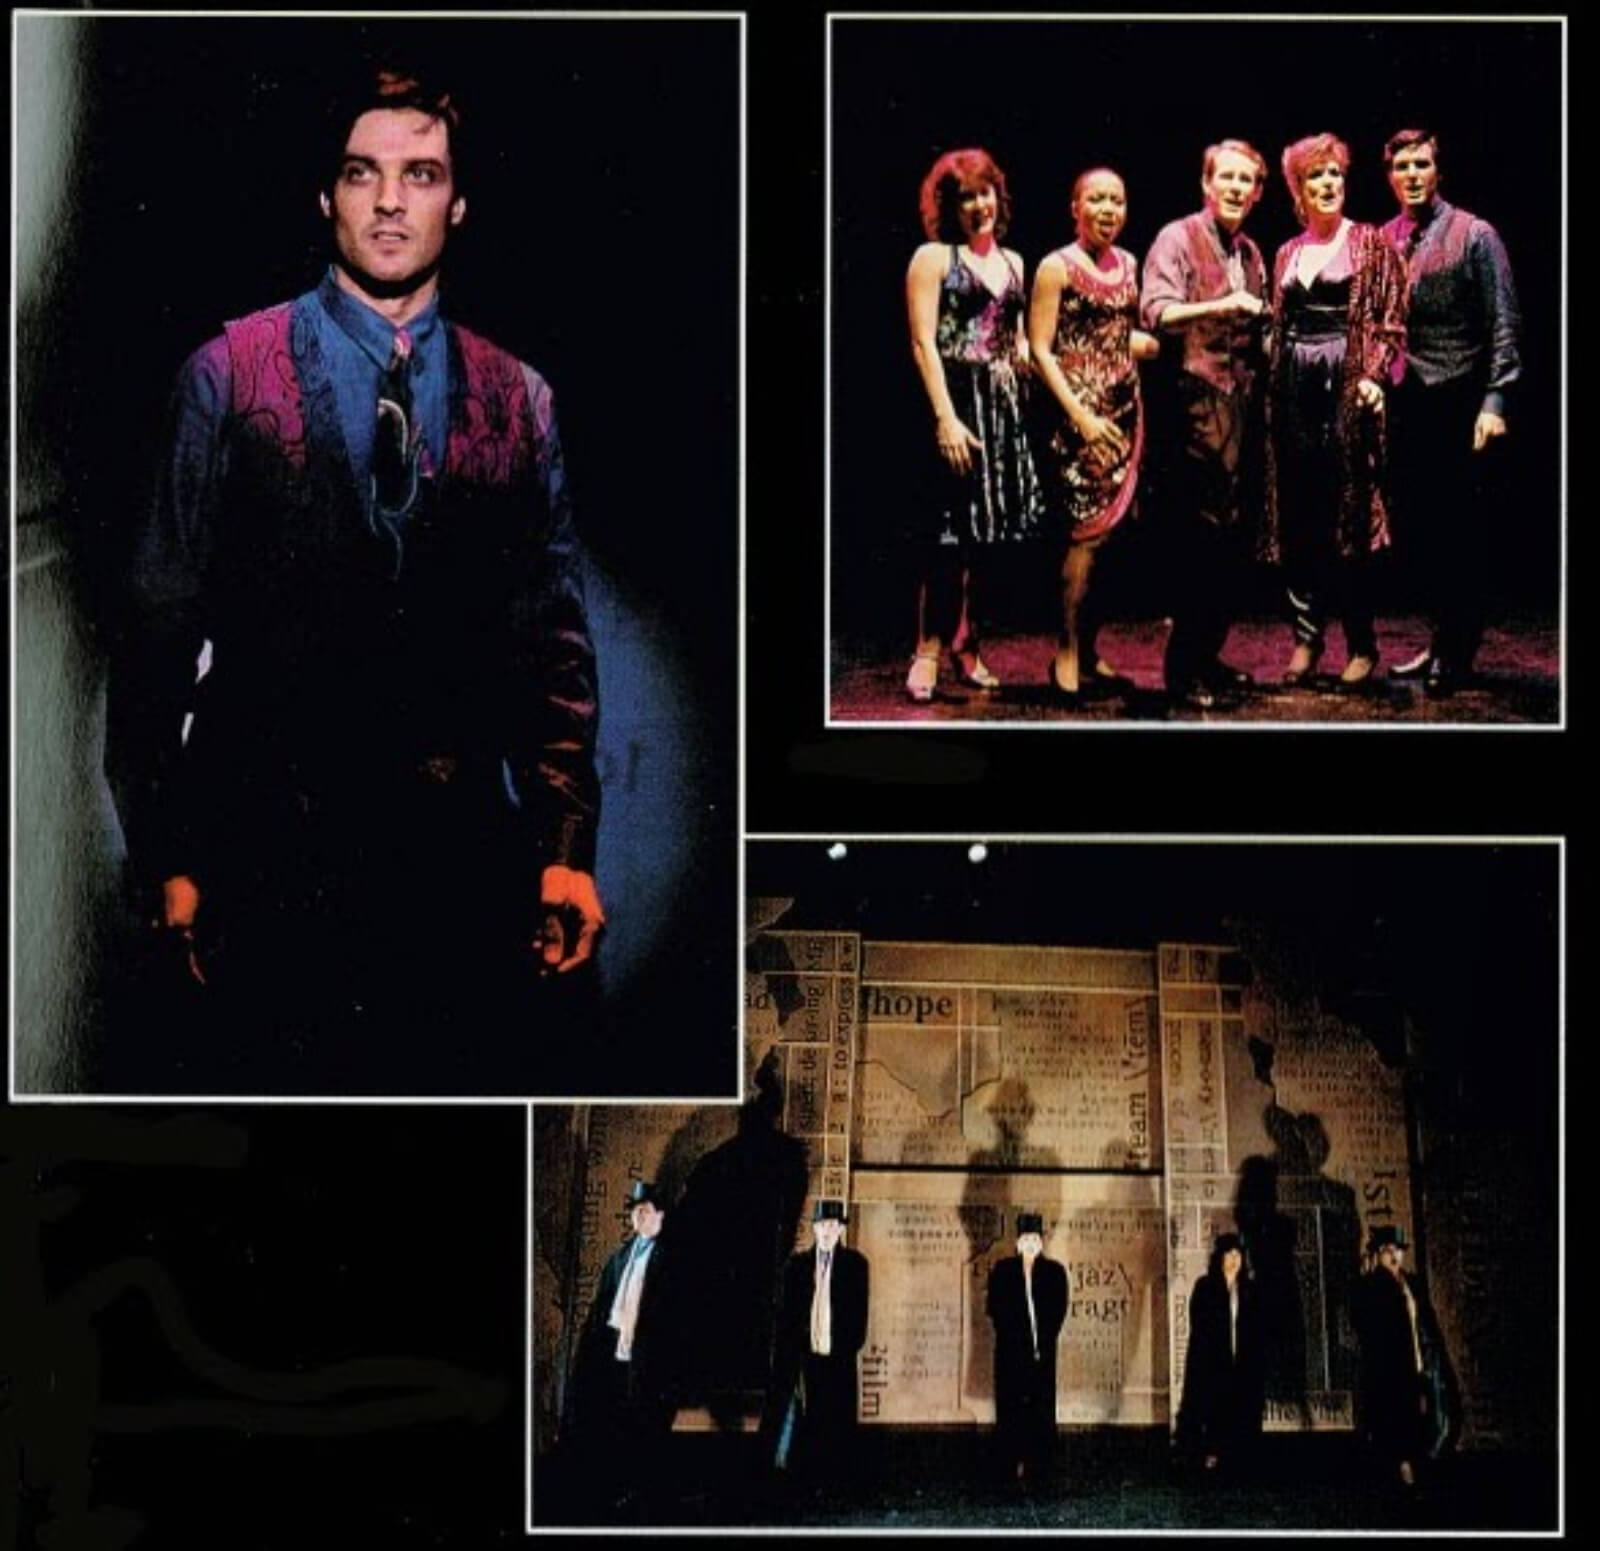 A montage of the cast in various scenes.